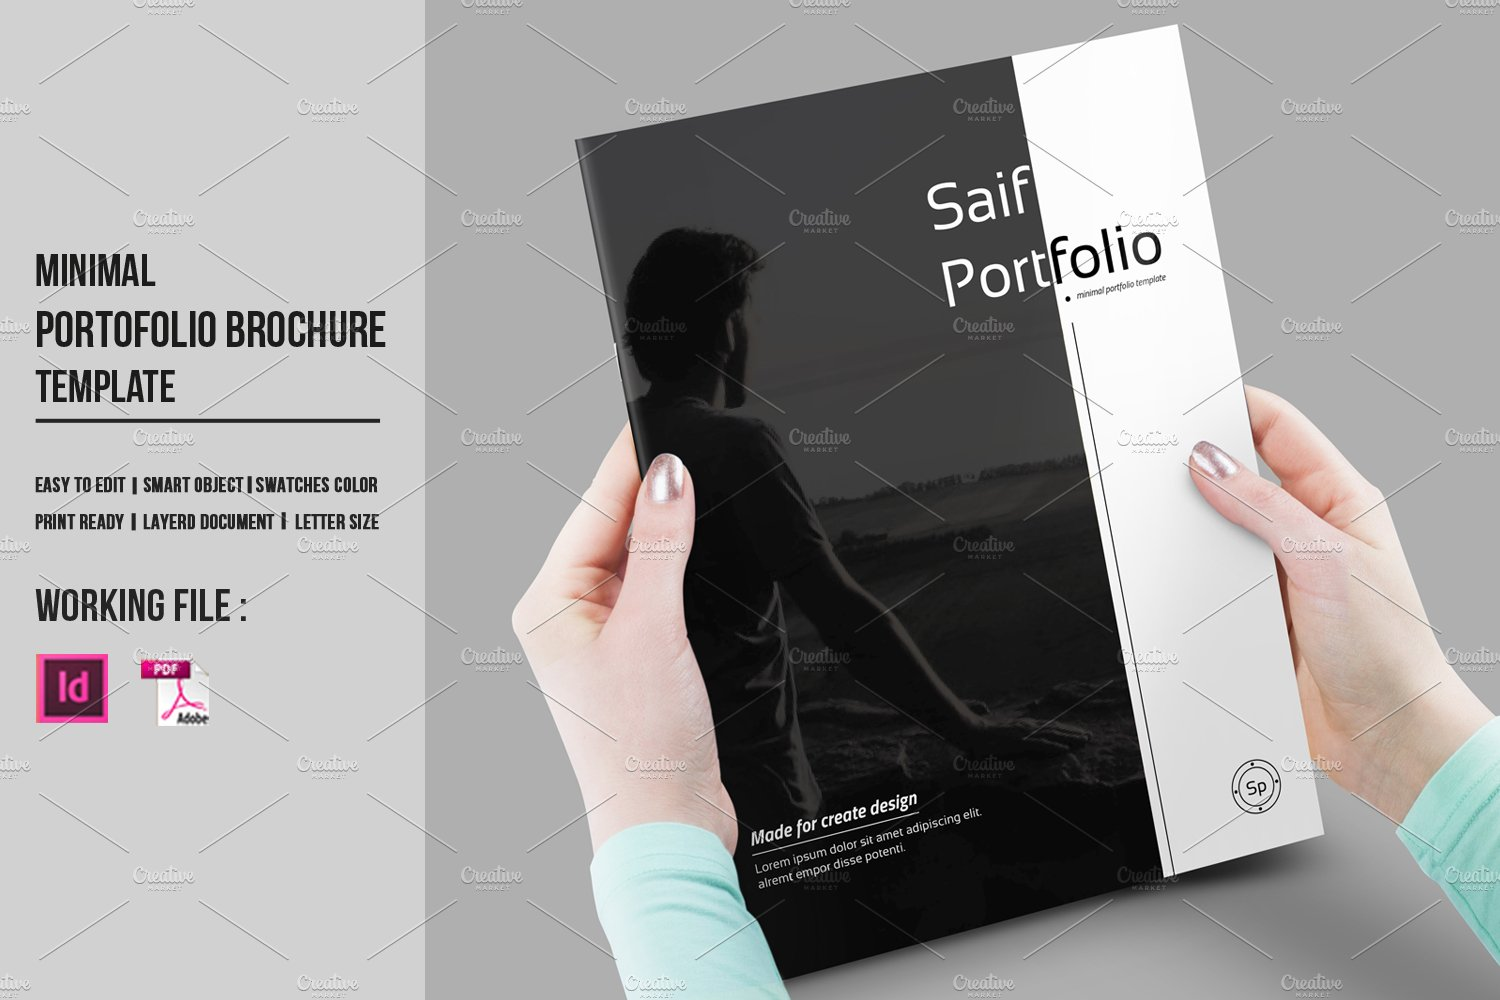 free indesign portfolio templates - indesign portfolio brochure v430 brochure templates